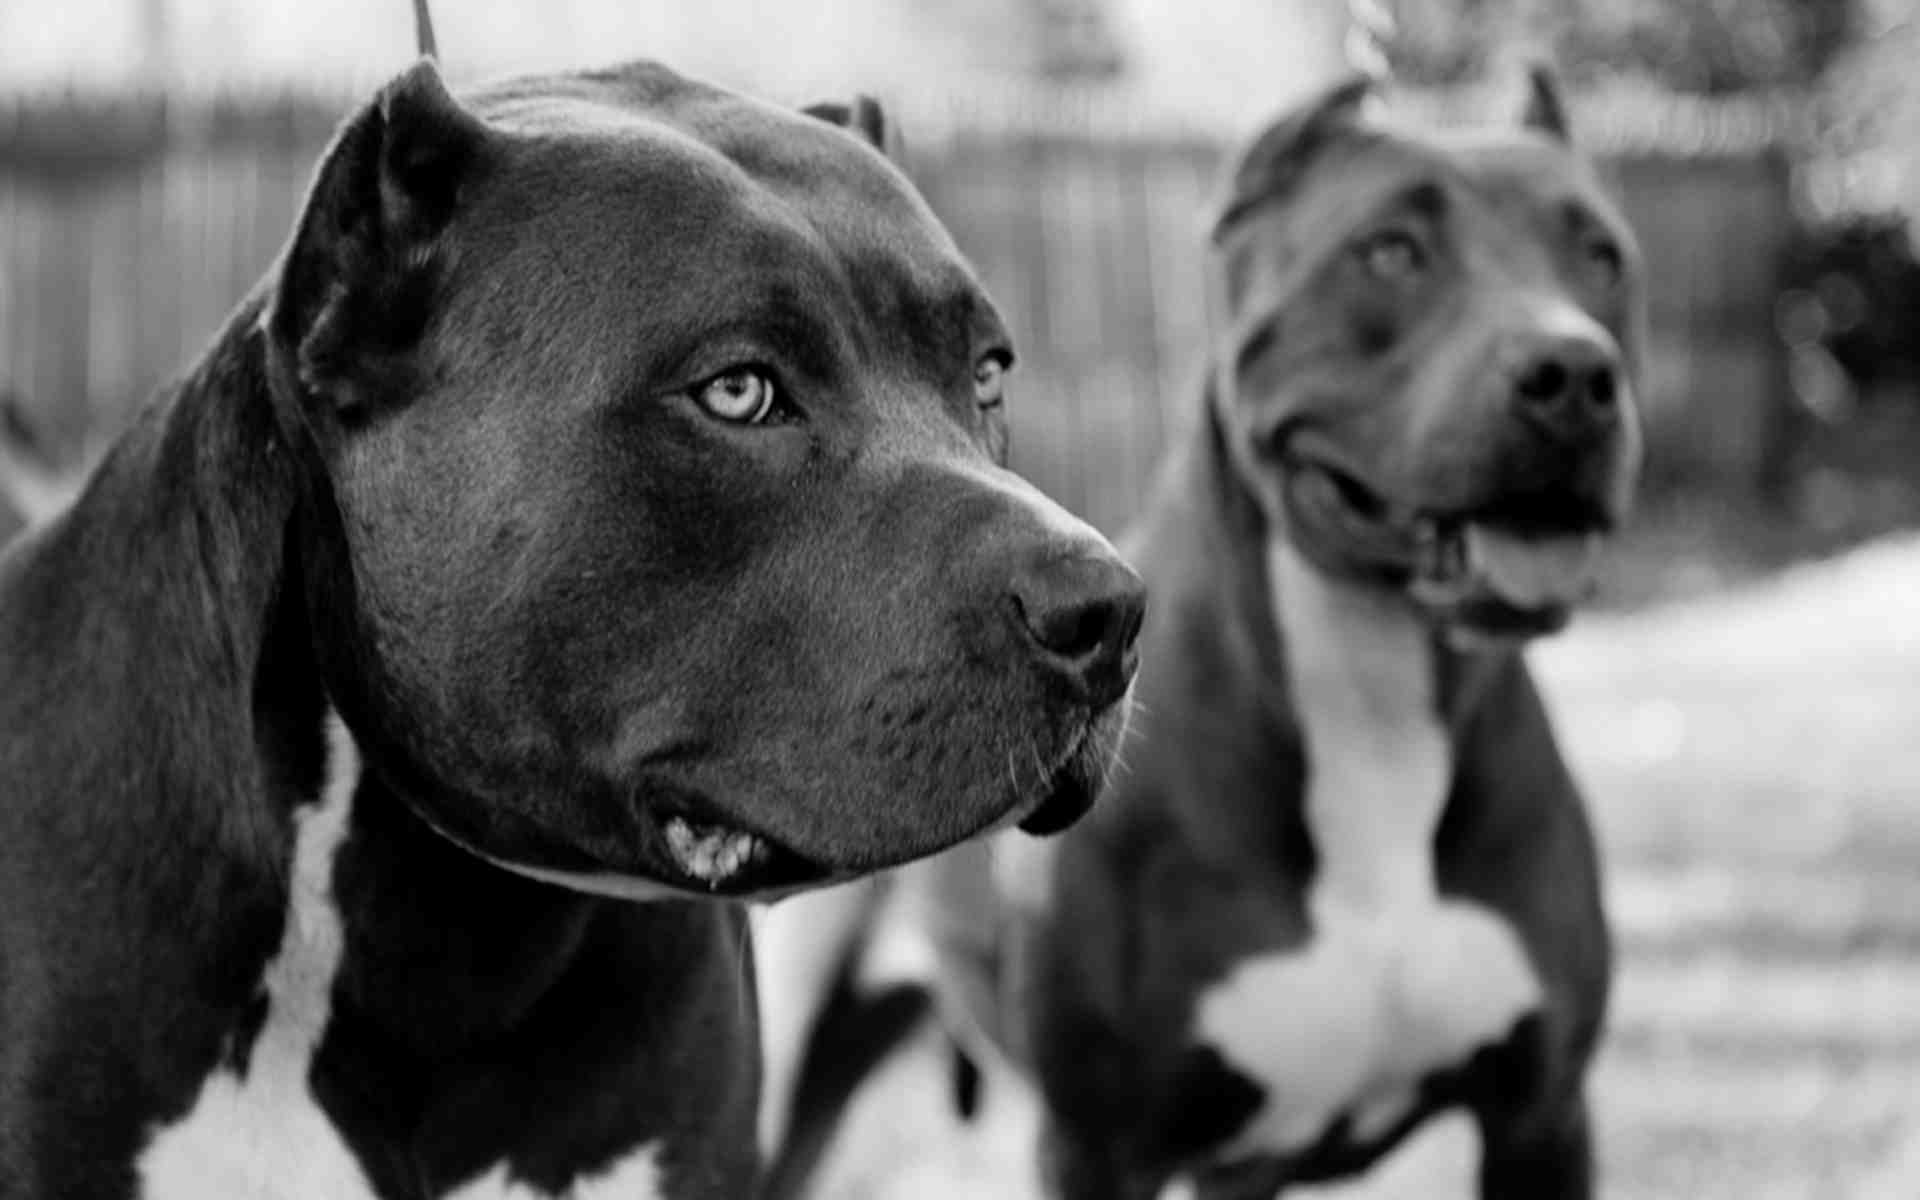 Wallpaper Of Pitbulls